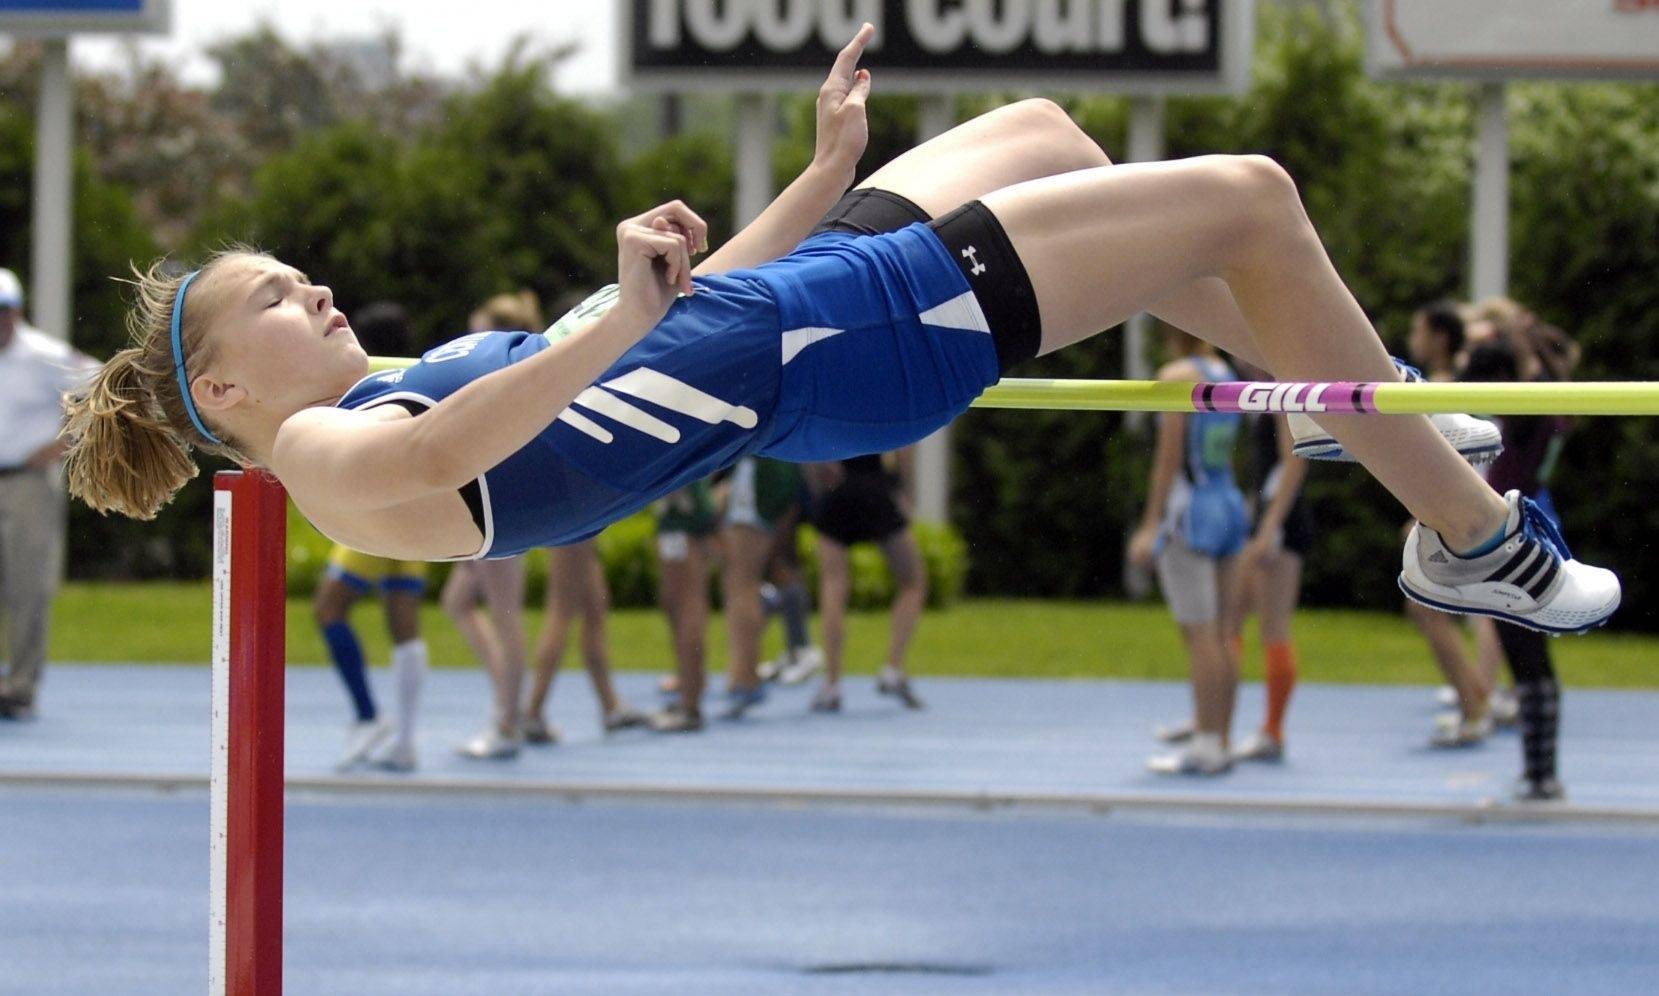 Burlington Central's Katie Trupp (Fr.) competes in the high jump during Friday's semifinal action at the girl's state track meet at Eastern Illinois University in Charleston.